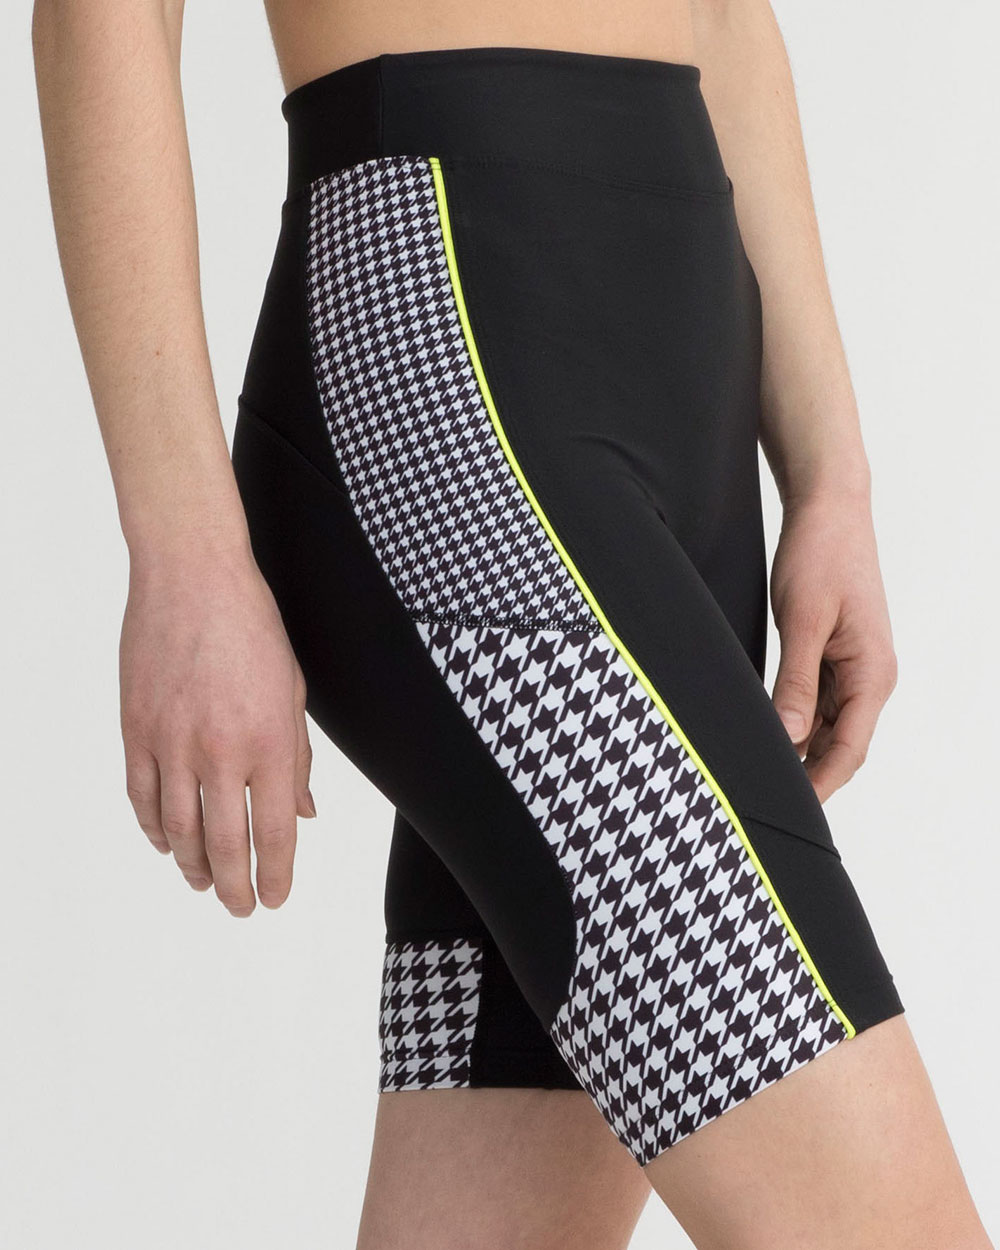 MALVERN SHORTS BLACK & WHITE HOUNDSTOOTH COMBO